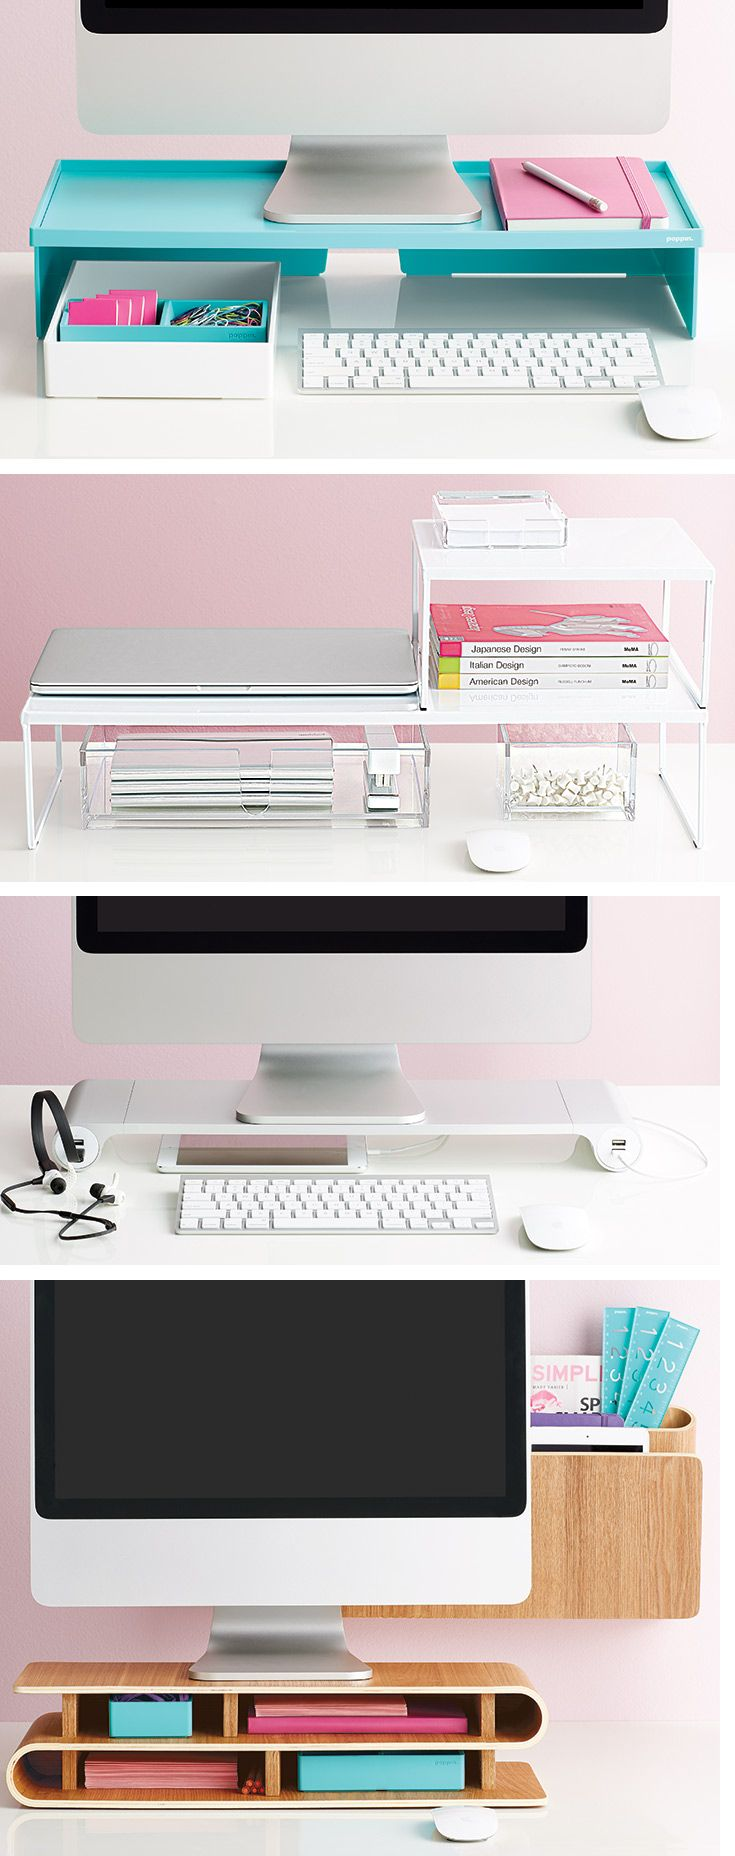 office cubicle accessories shelf. Organize Every Desk Setup With Creative Options From The Container Store! Office Cubicle Accessories Shelf F